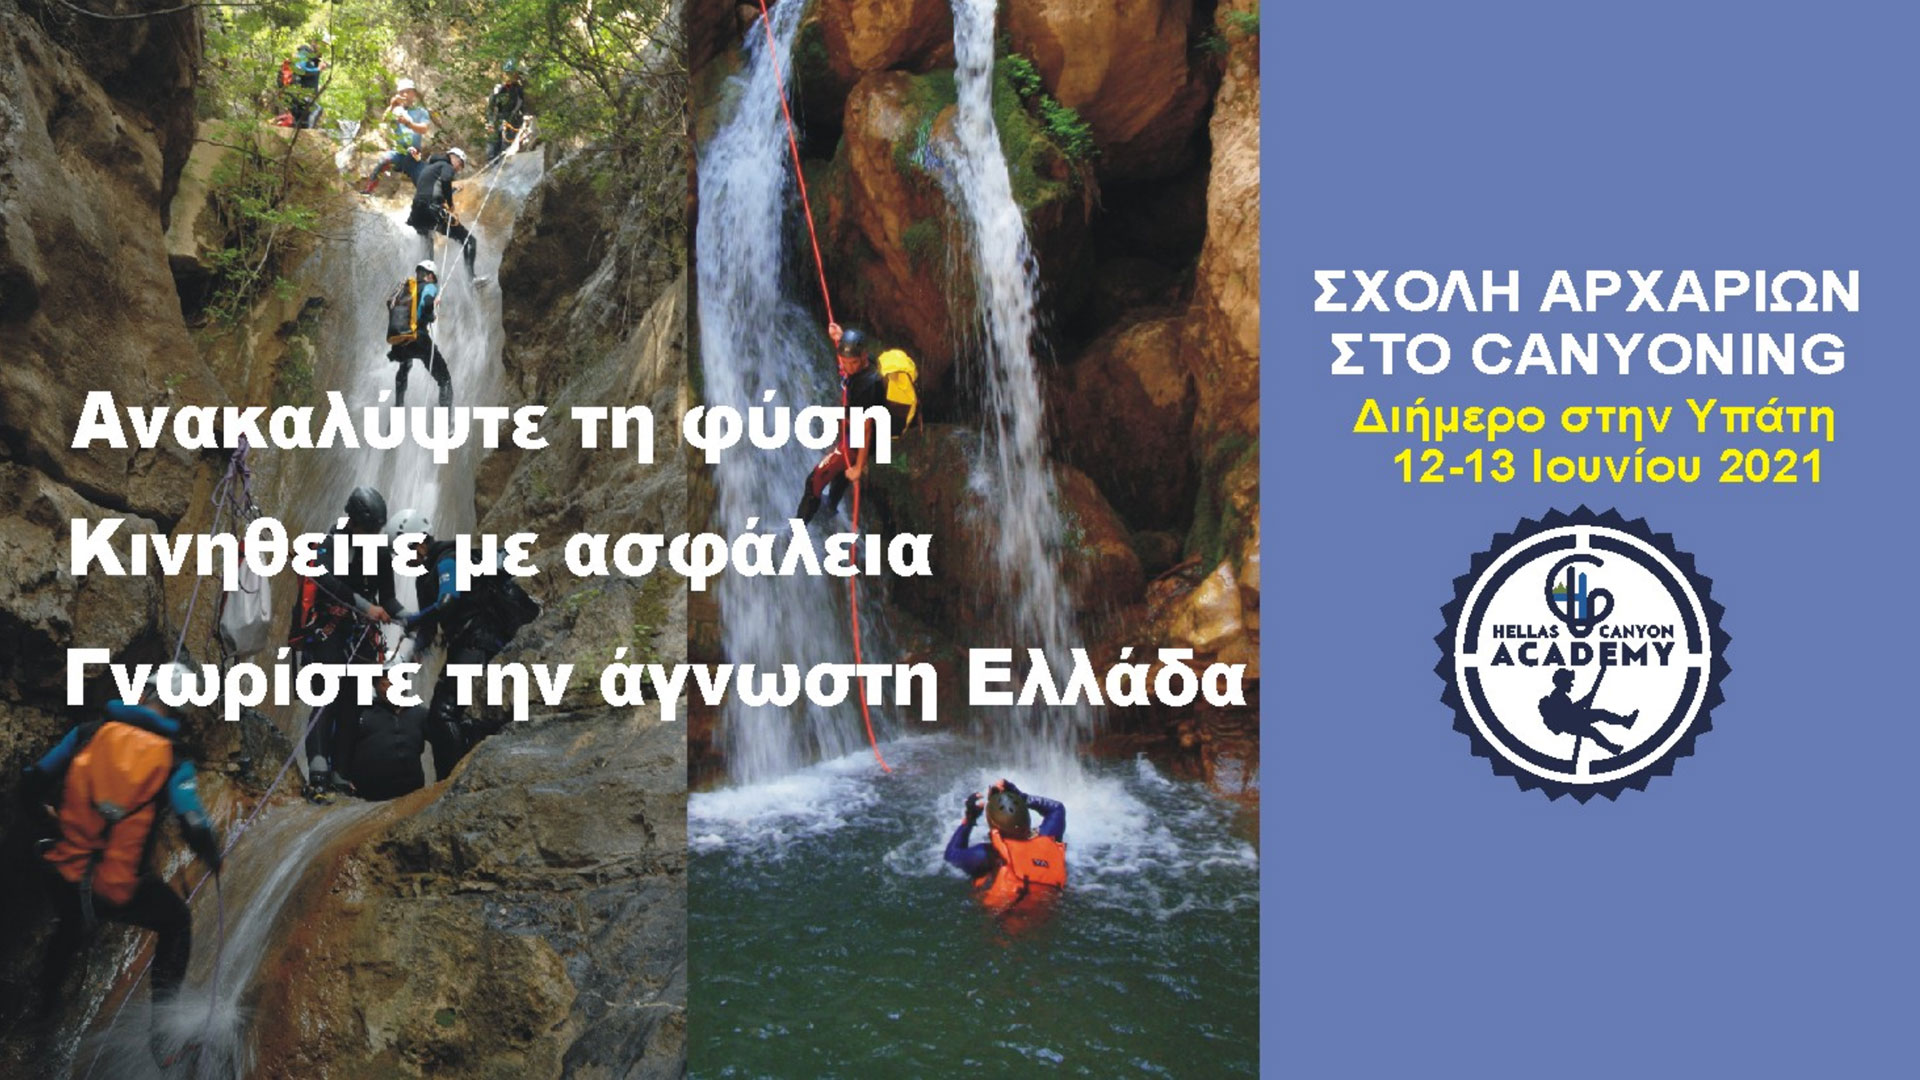 Banner for the basic canyoning course in Ypati, Greece